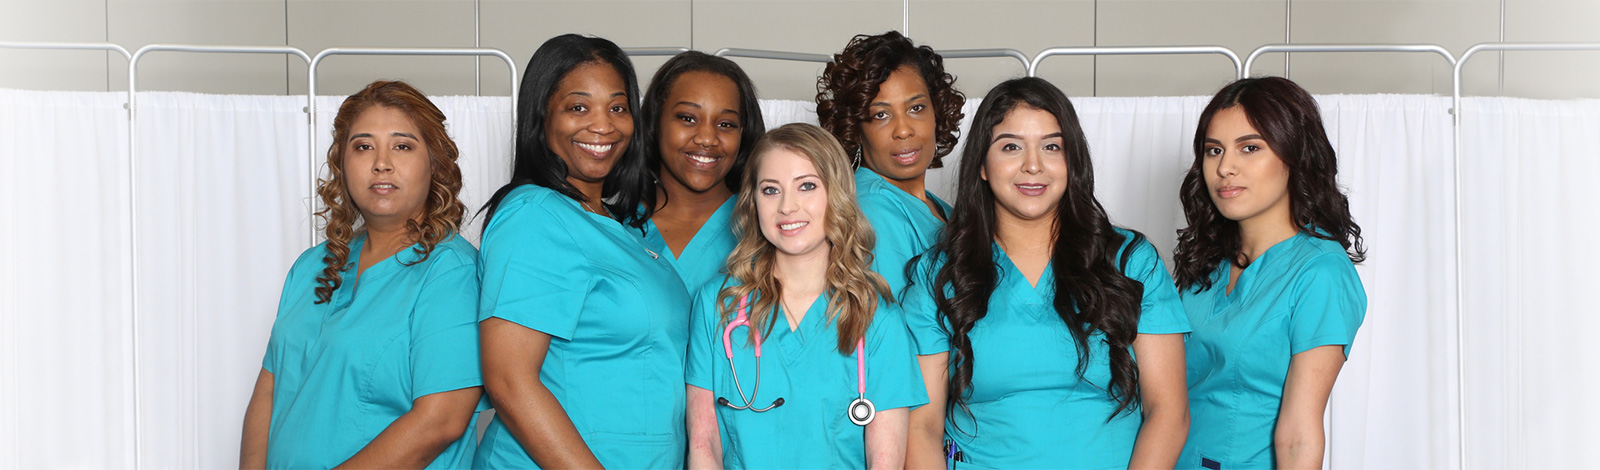 Nurses standing together smiling in a group.